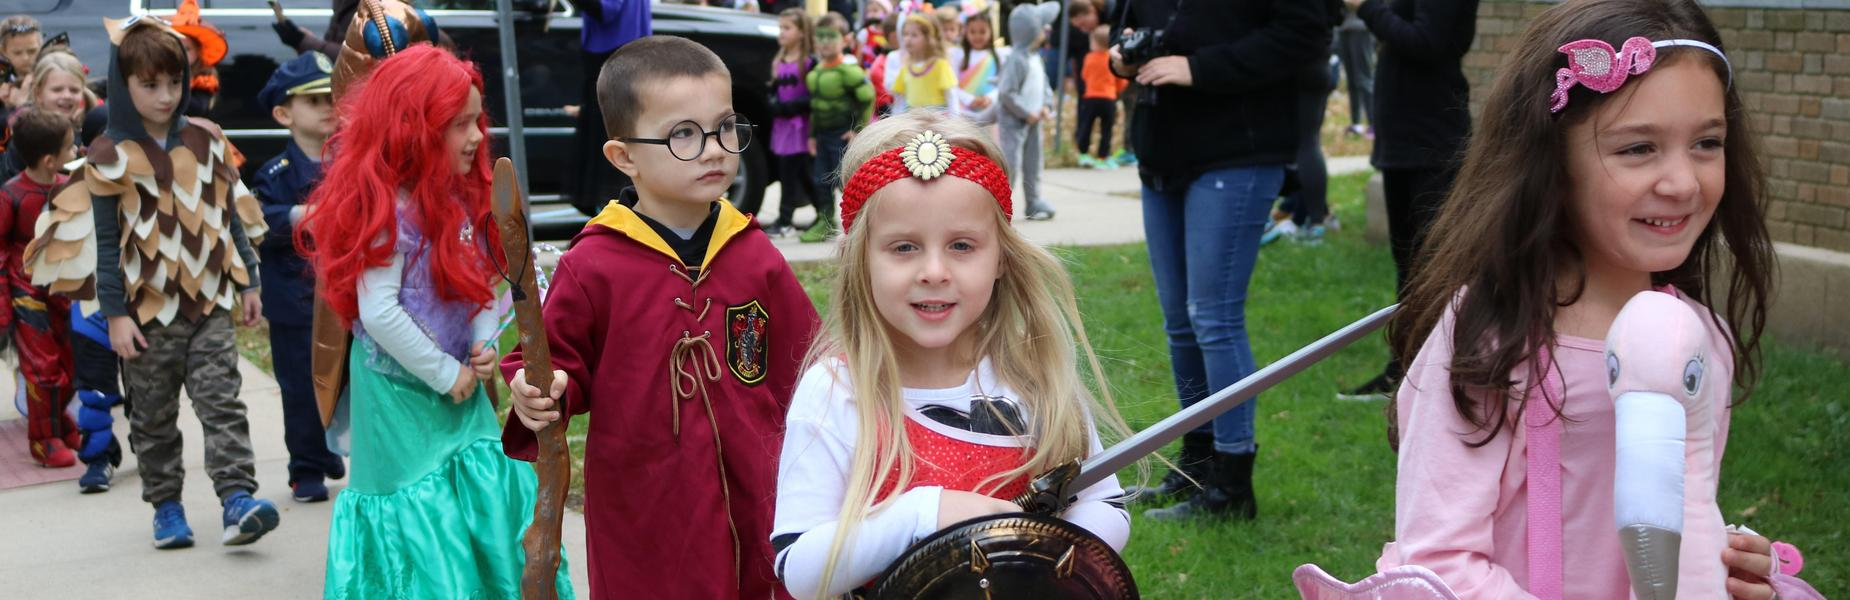 Lincoln School preschoolers and kindergartners show off their costumes in the school's annual Halloween Parade.